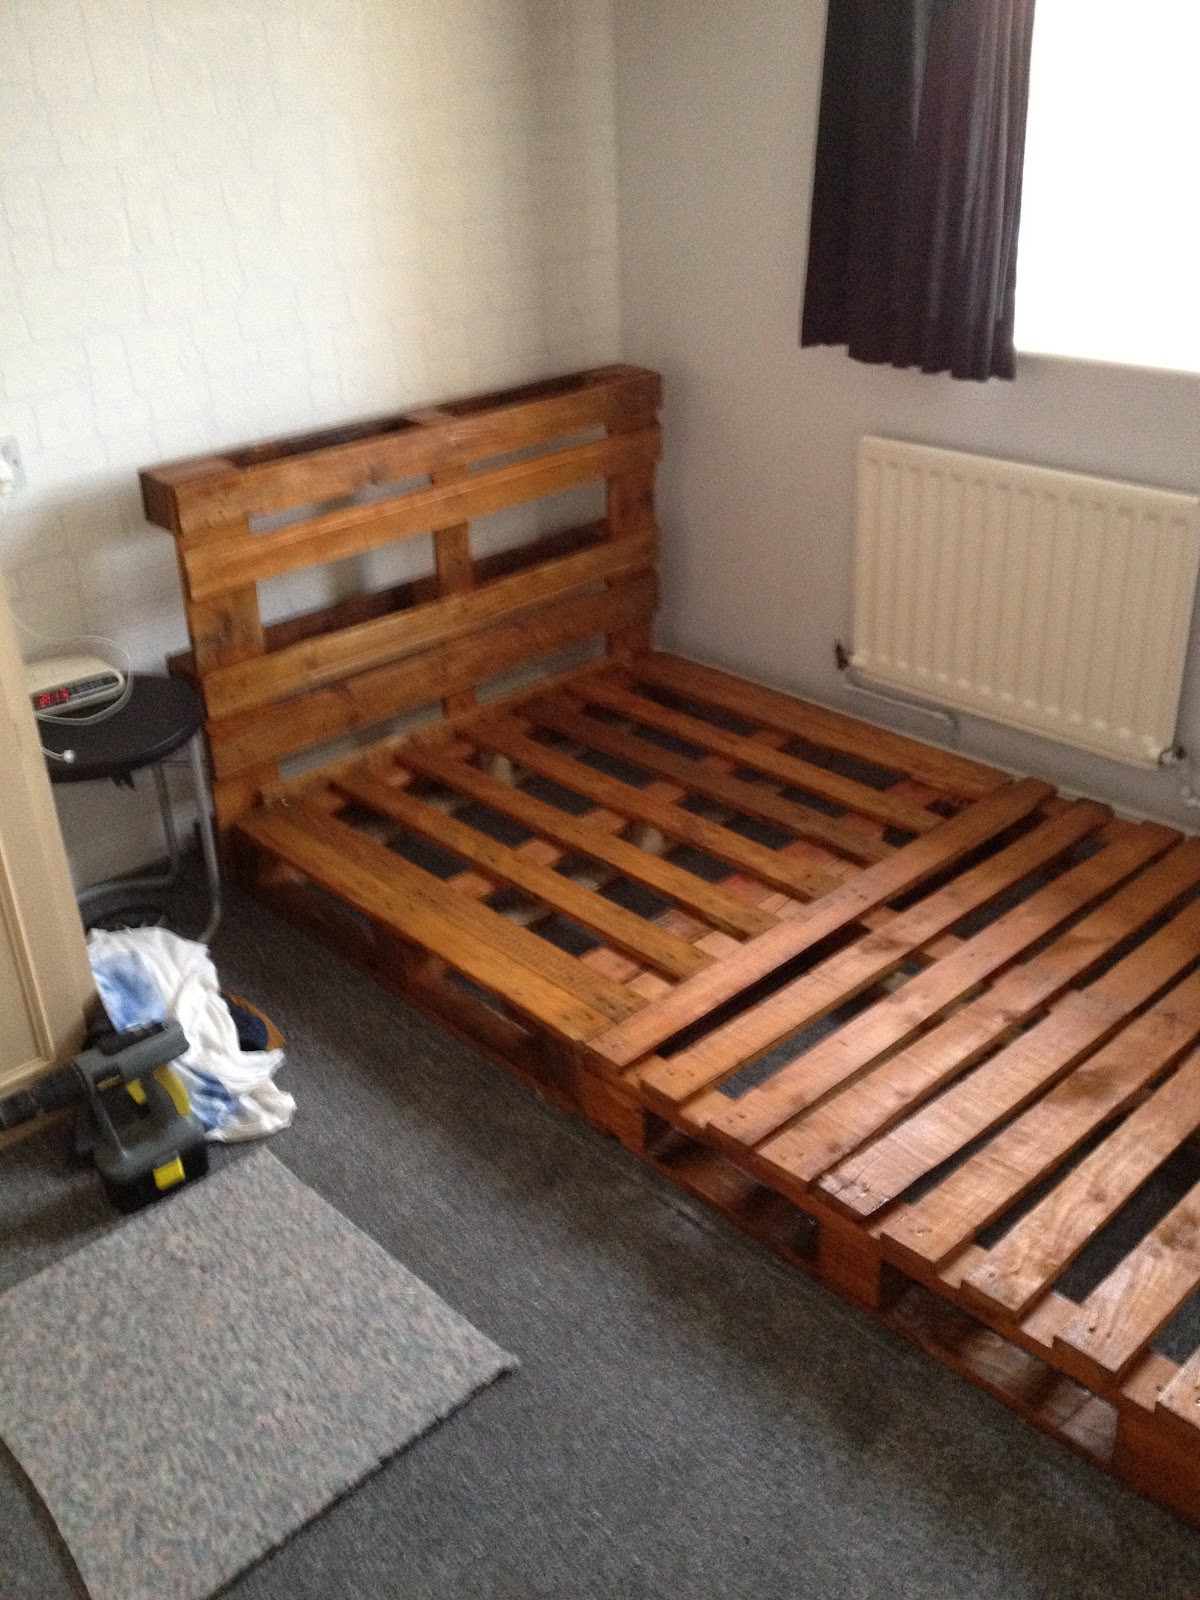 Best ideas about DIY Pallet Bed Frames . Save or Pin notinabox DIY Pallet Bed Now.